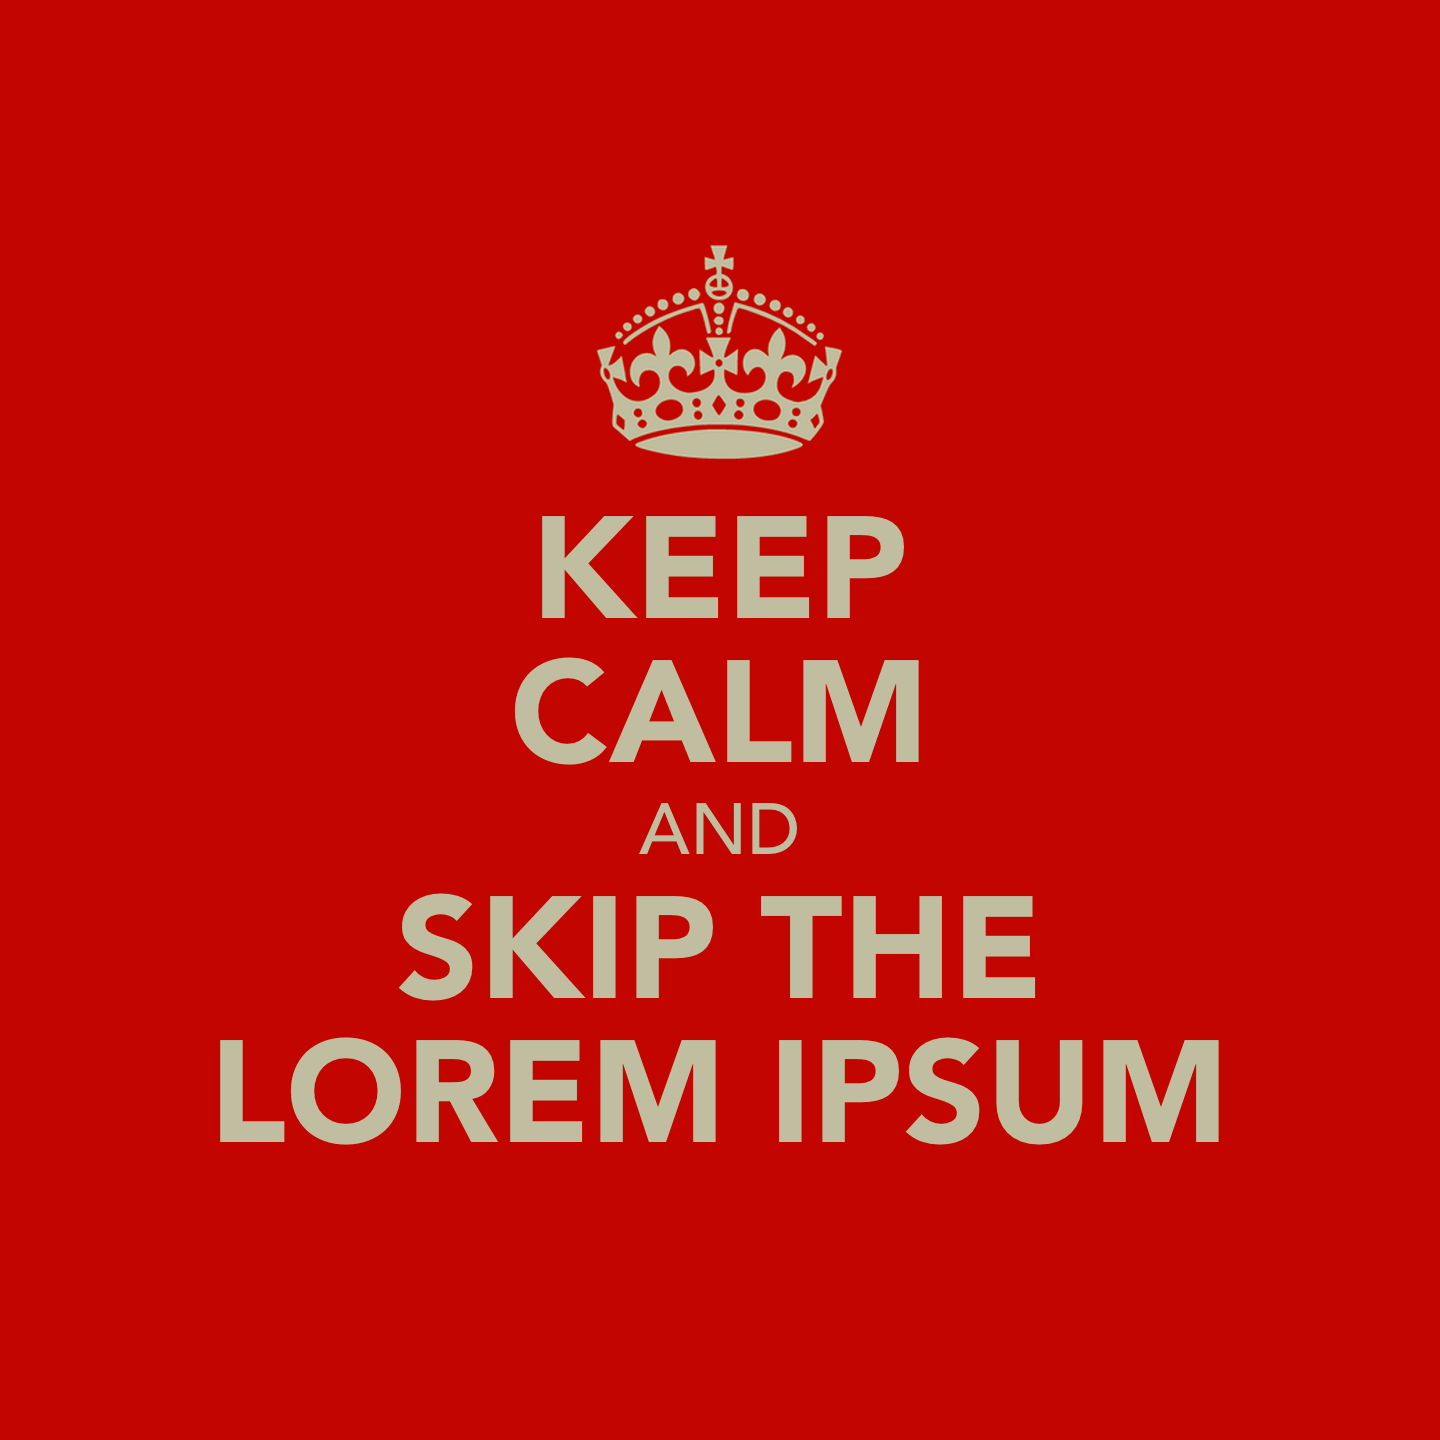 Keep calm and skip the lorem ipsum